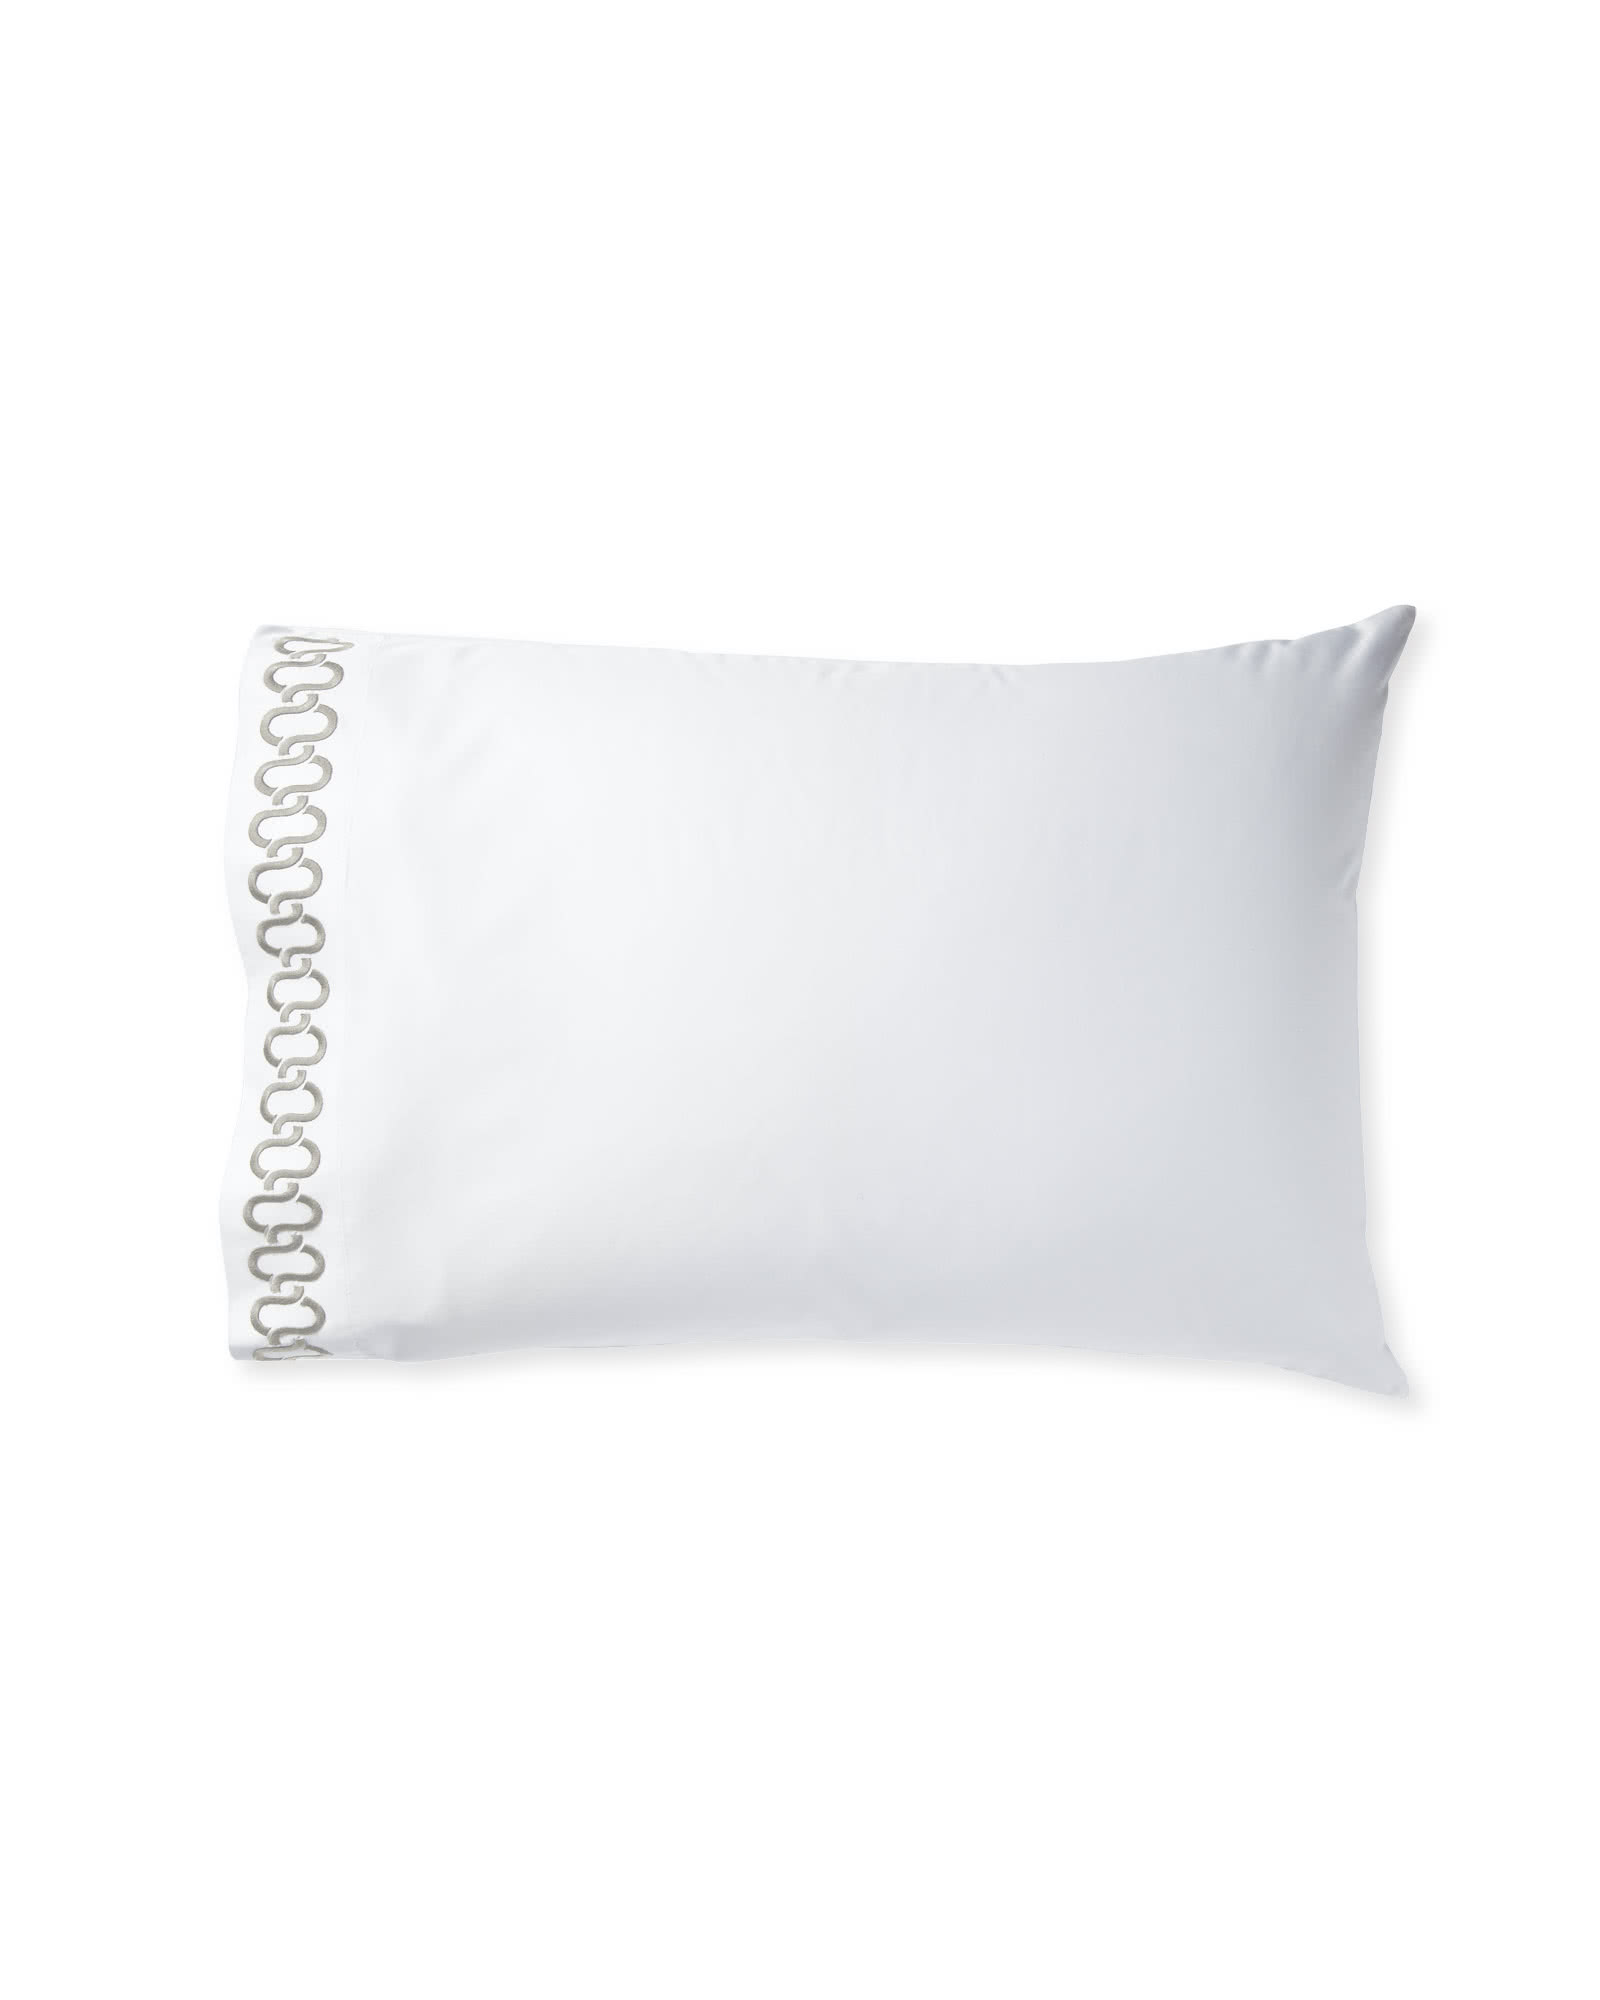 Extra Savoy Links Embroidered Pillowcases - Set of 2